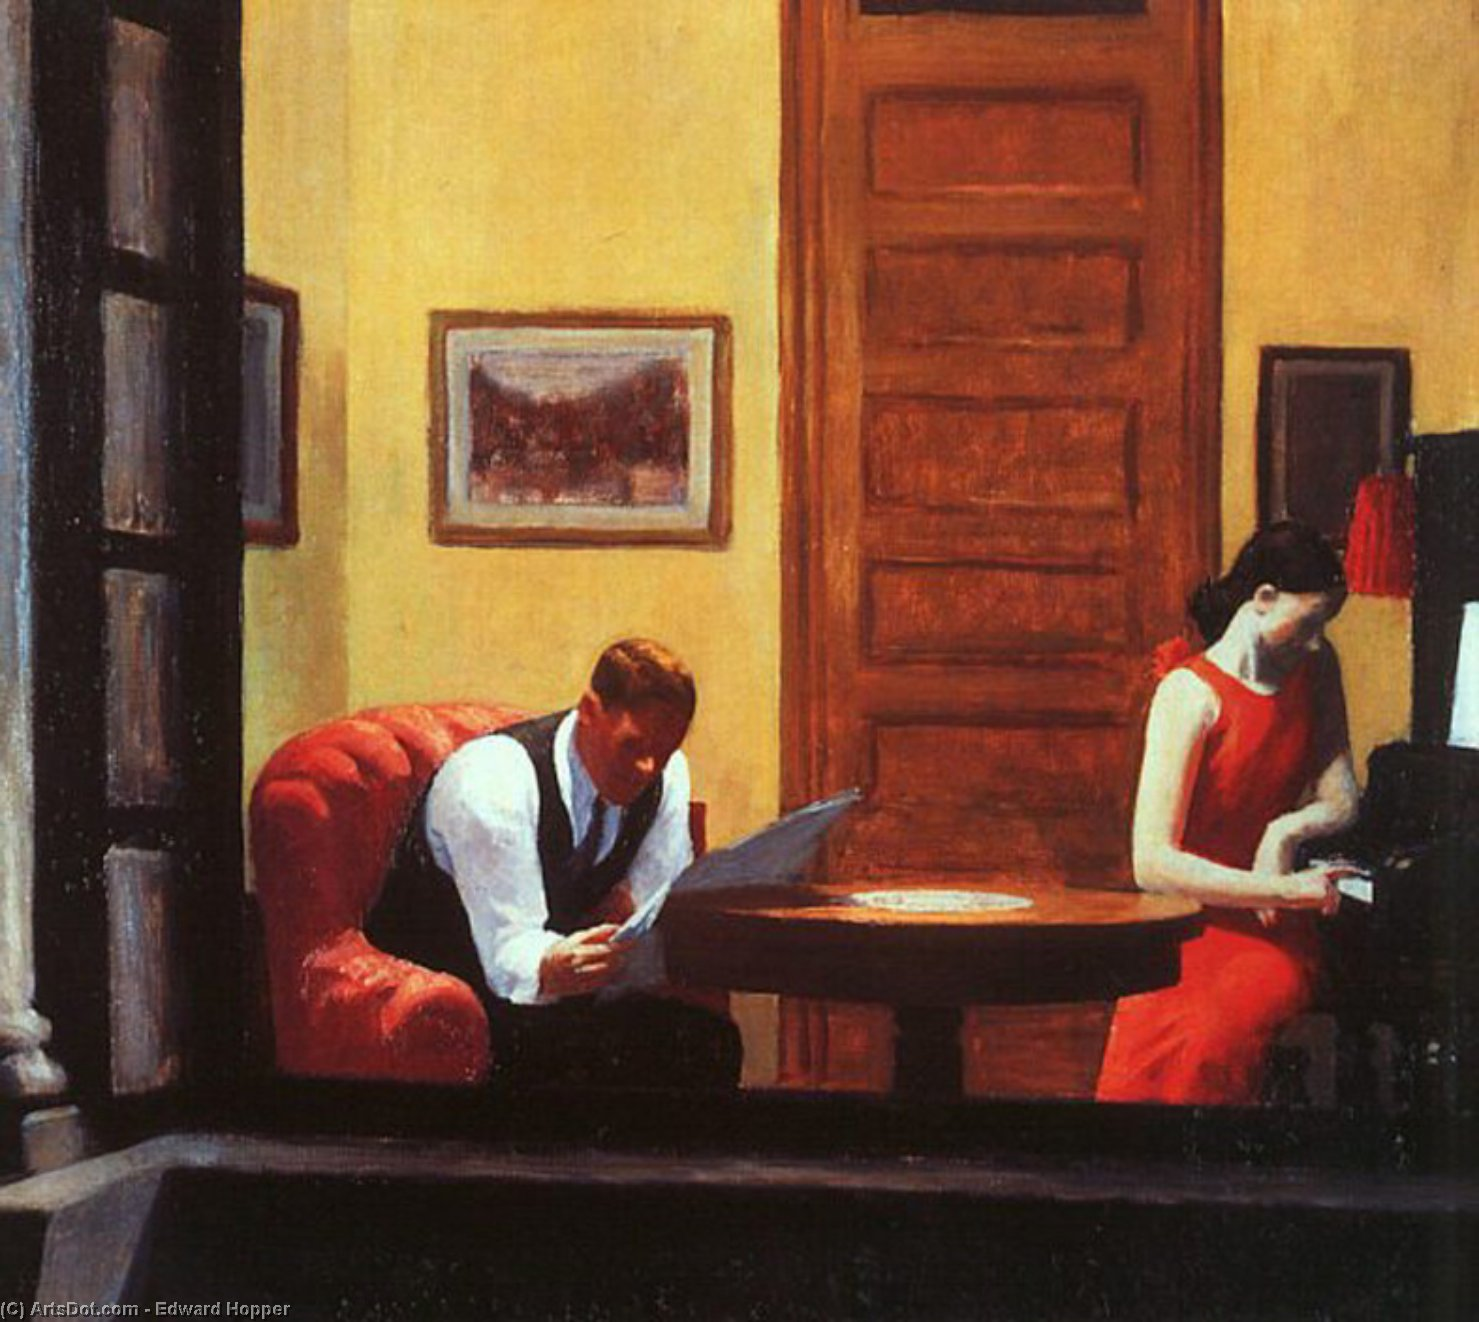 essay on edward hopper The first and definitive biography of one of america's greatest painters, published in 1995 this study guide includes a summary, critical essays, and an in-depth reference section.